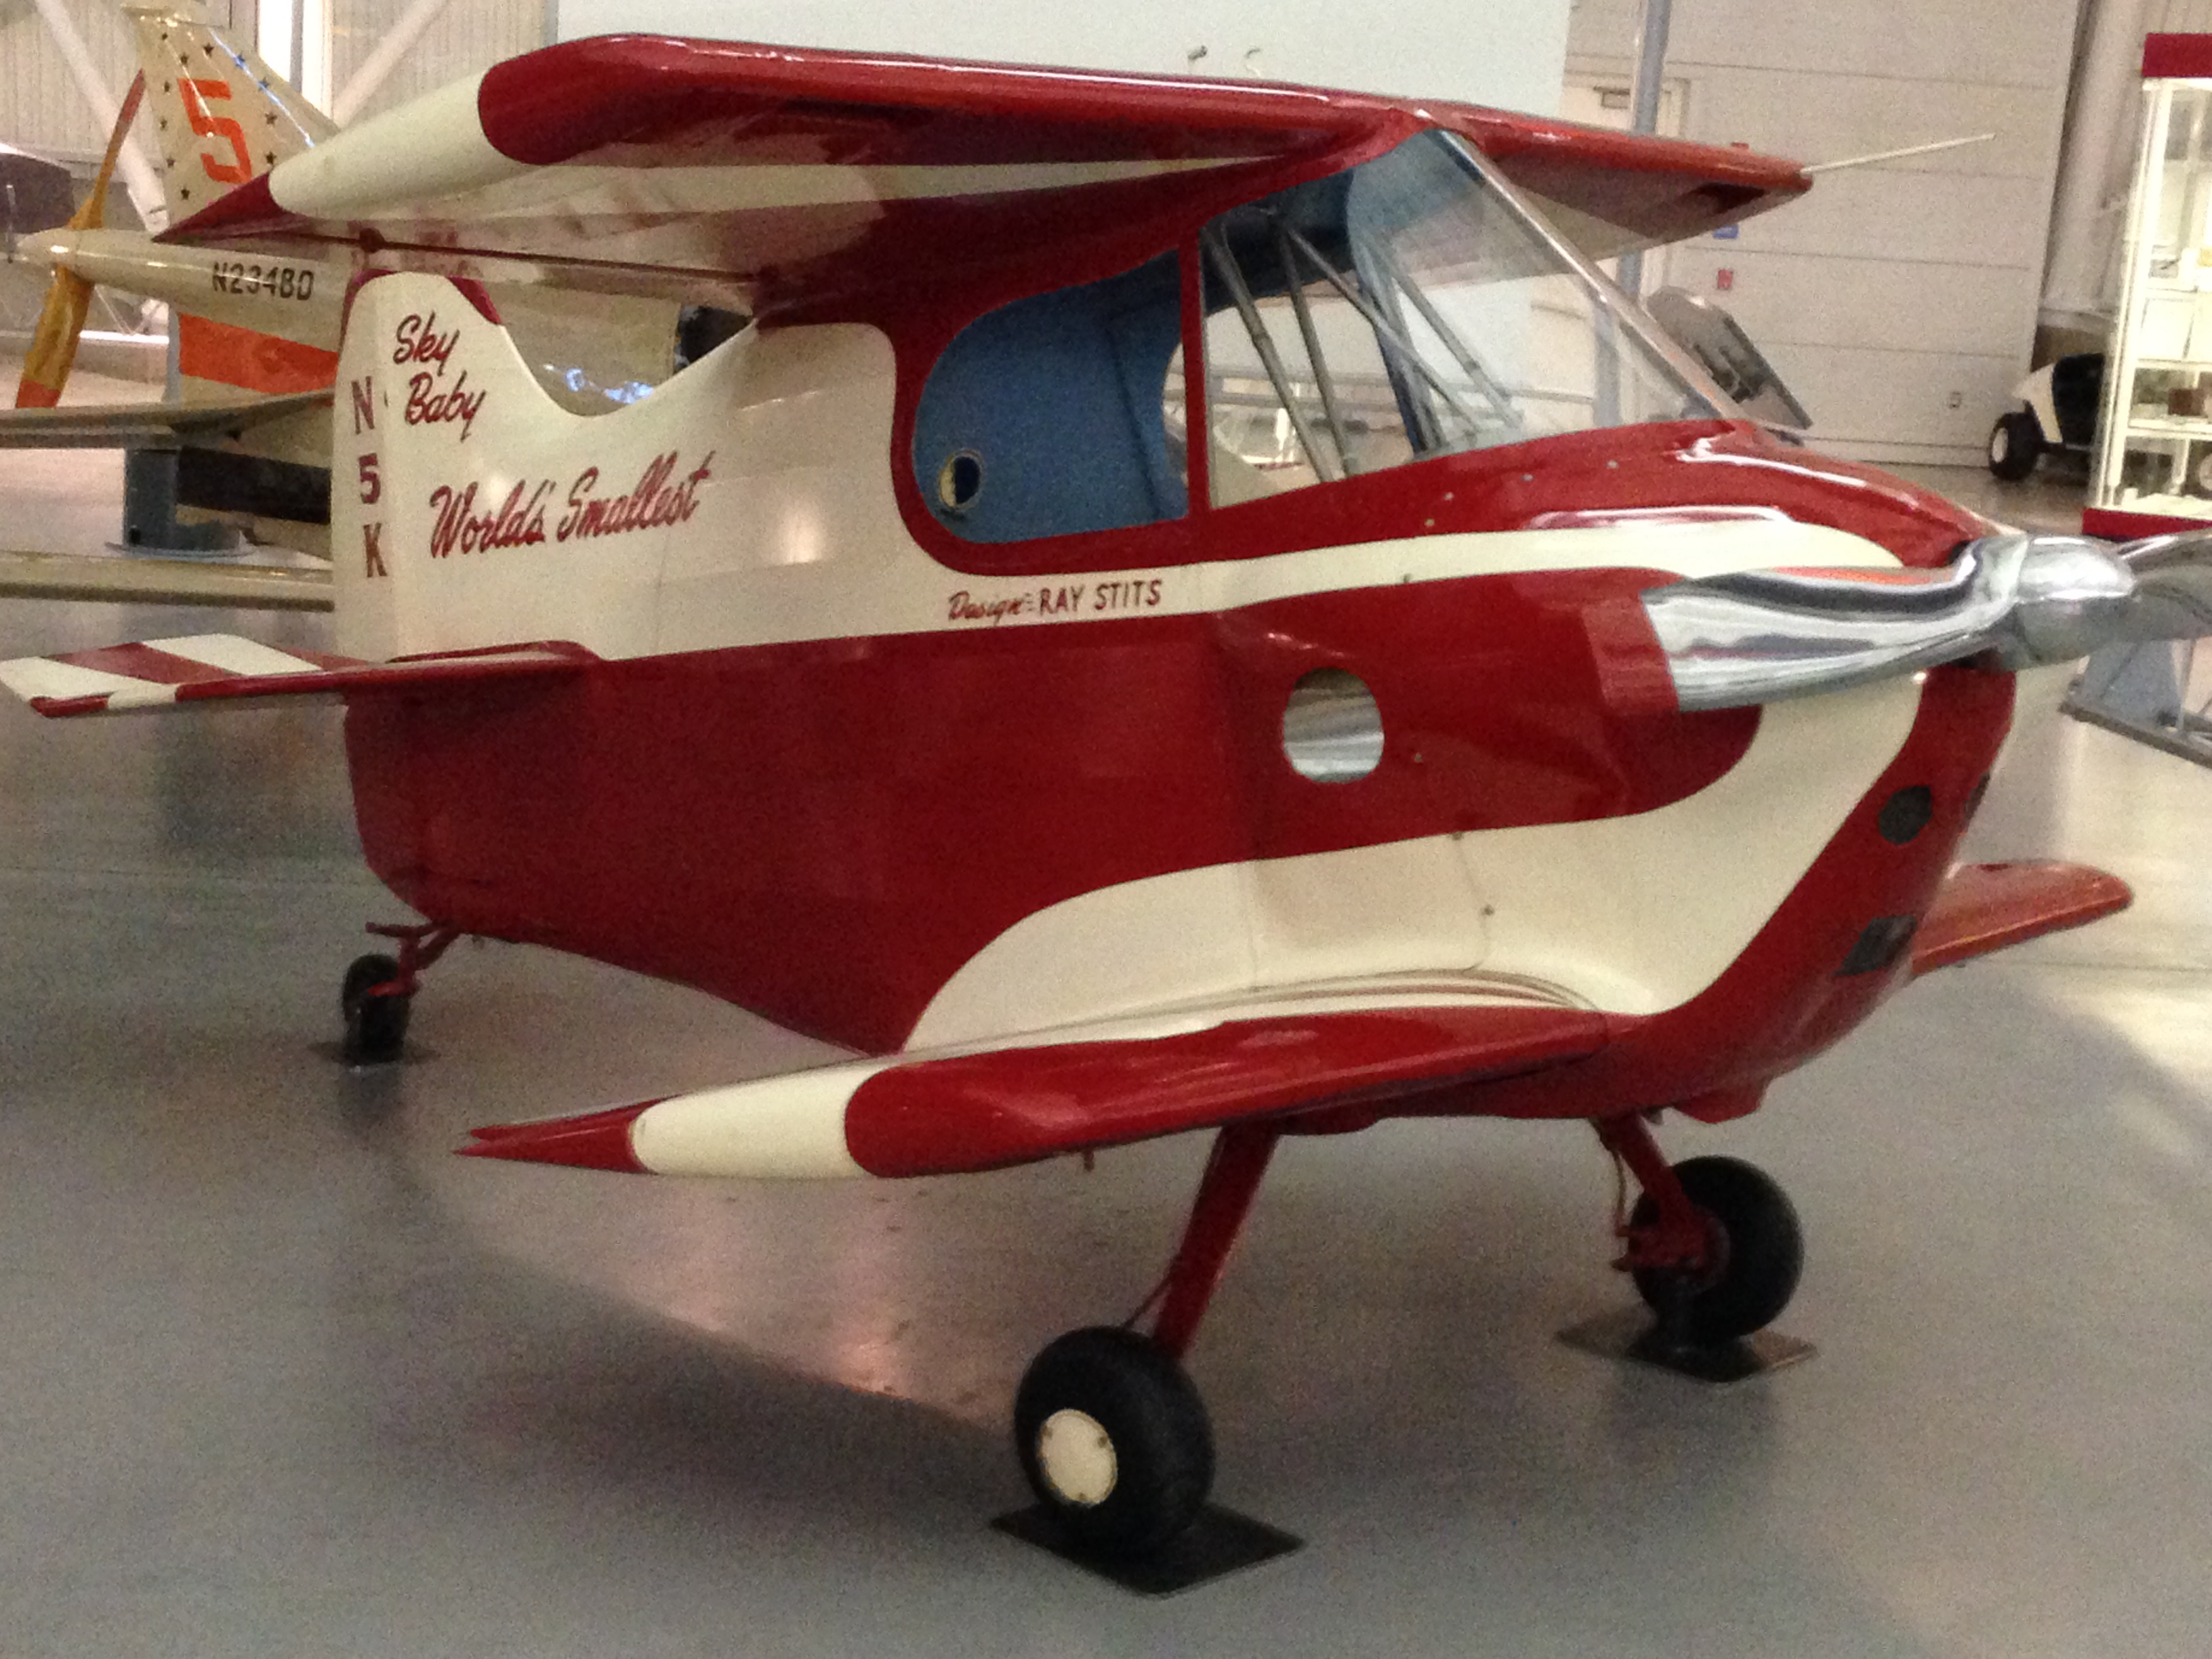 Another cute little plane. I think it might be the 2nd or 3rd smallest plane in the world.